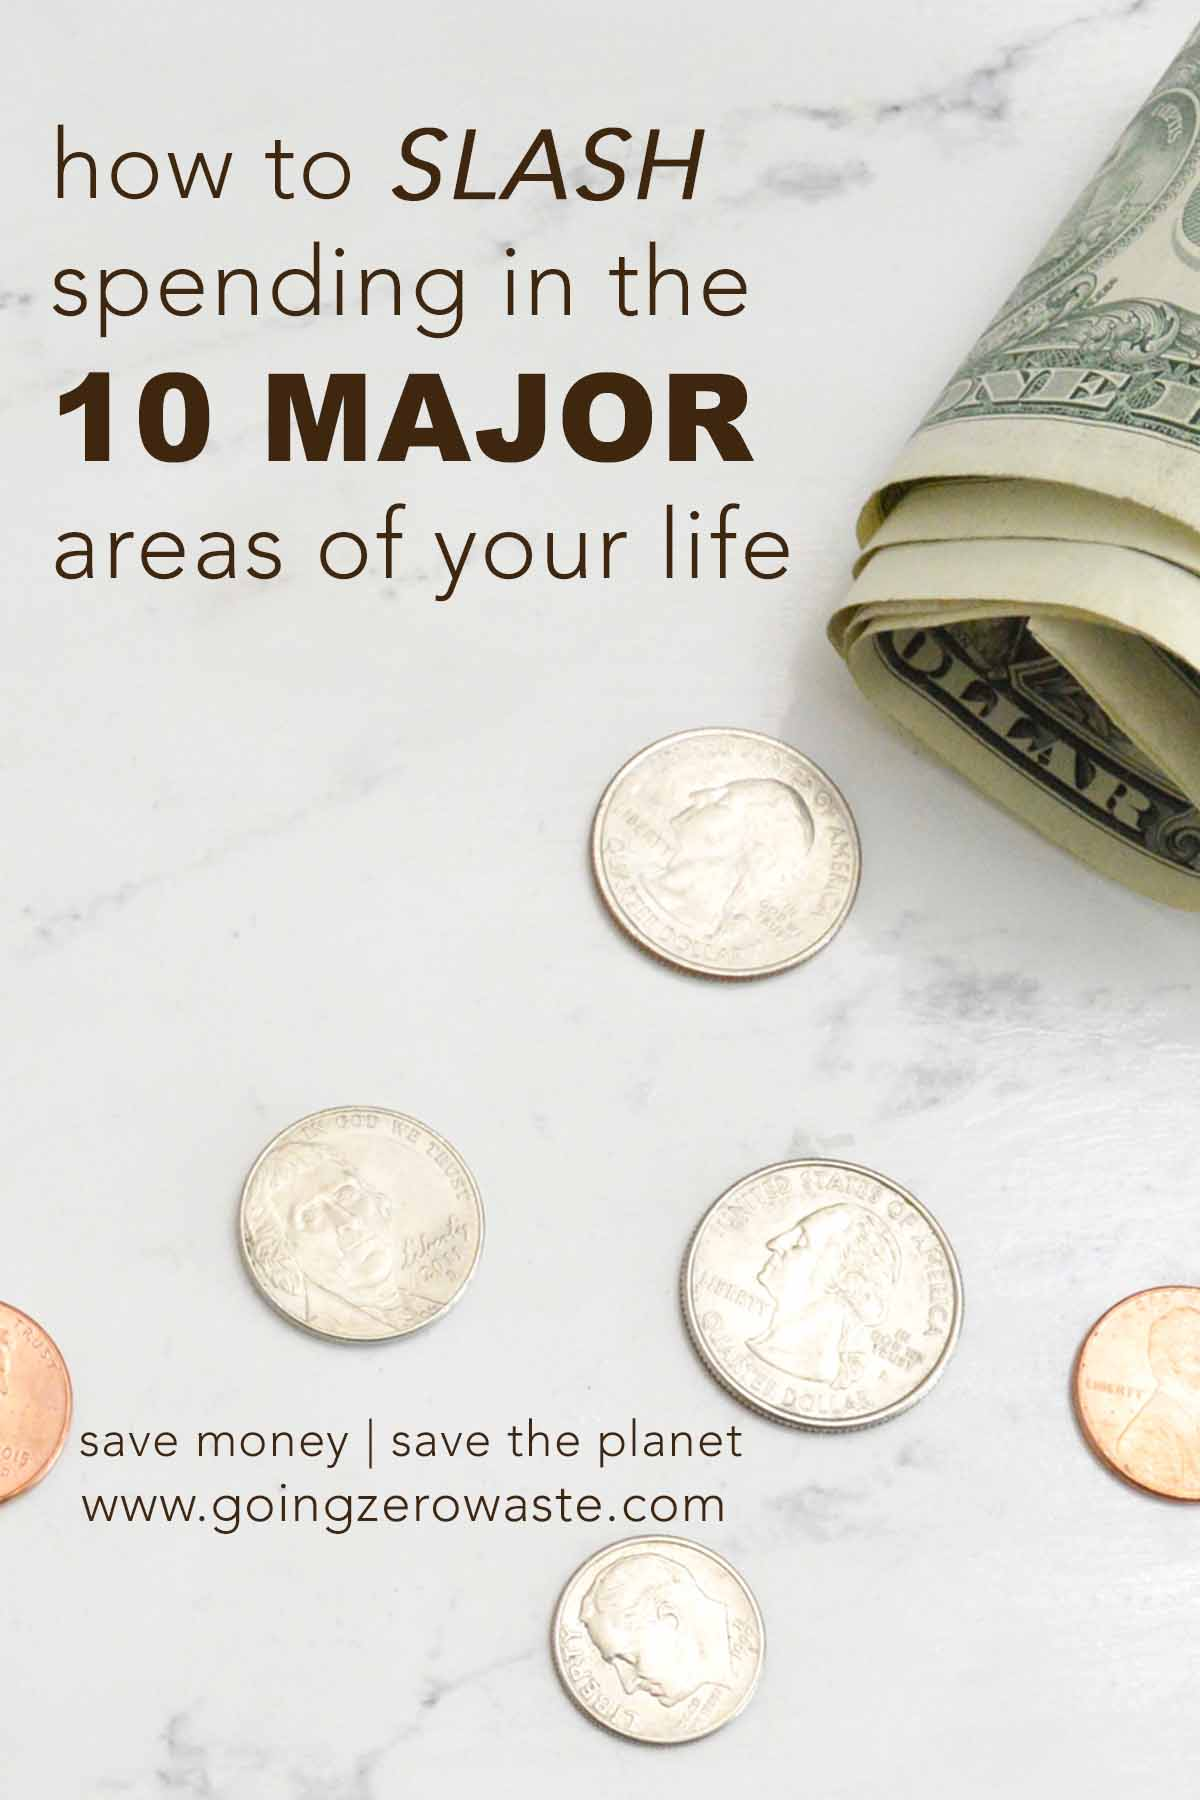 10 Ways to Save money and the planet from www.goingzerowaste.com #ecofriendly #zerowaste #sustainableliving #savemoney #frugal #simpleliving